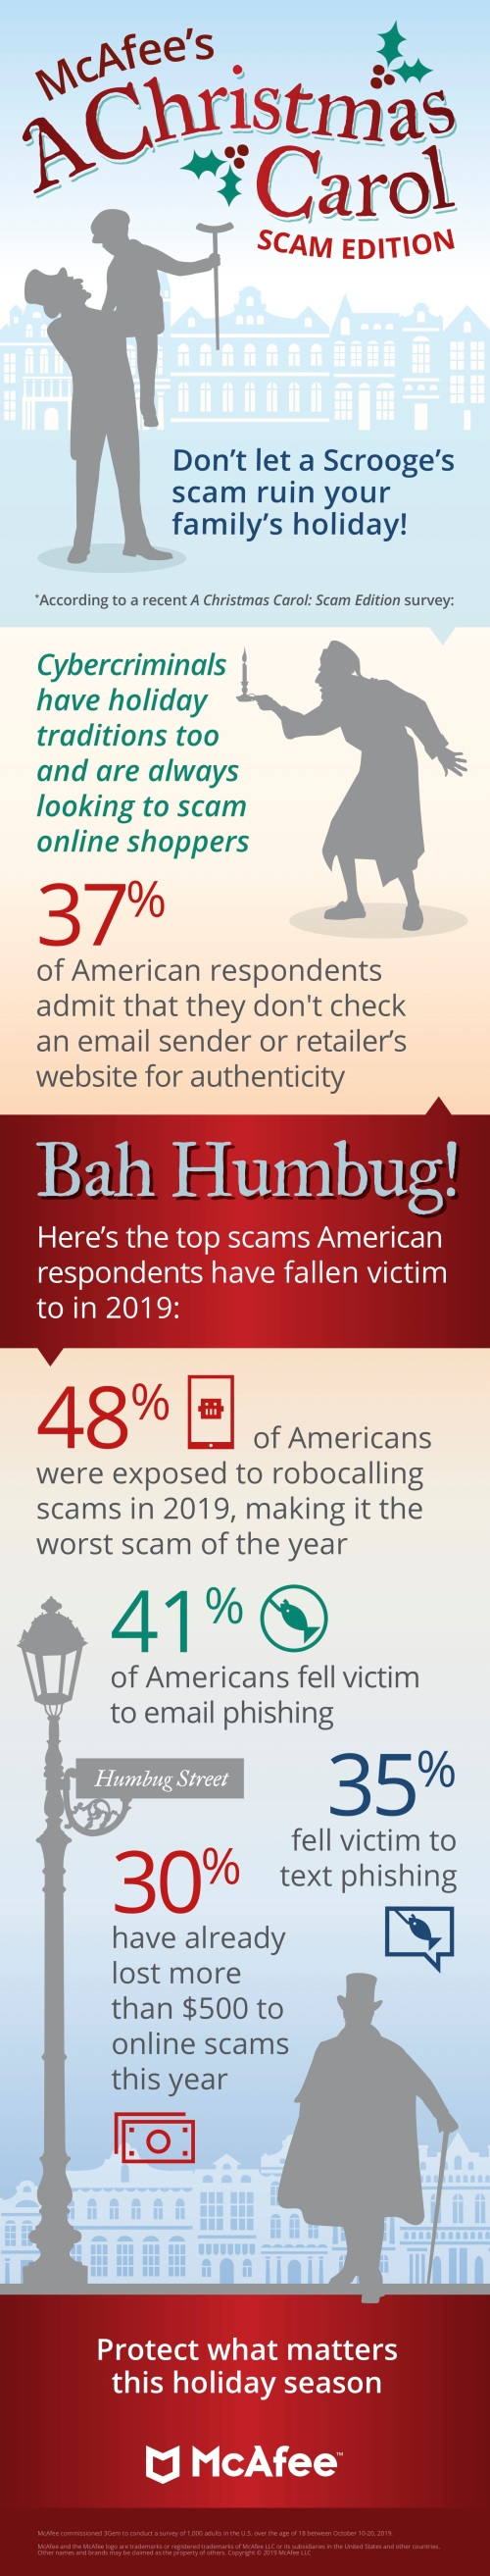 infographic-mcafee-christmas-carol-scam-edition.jpg